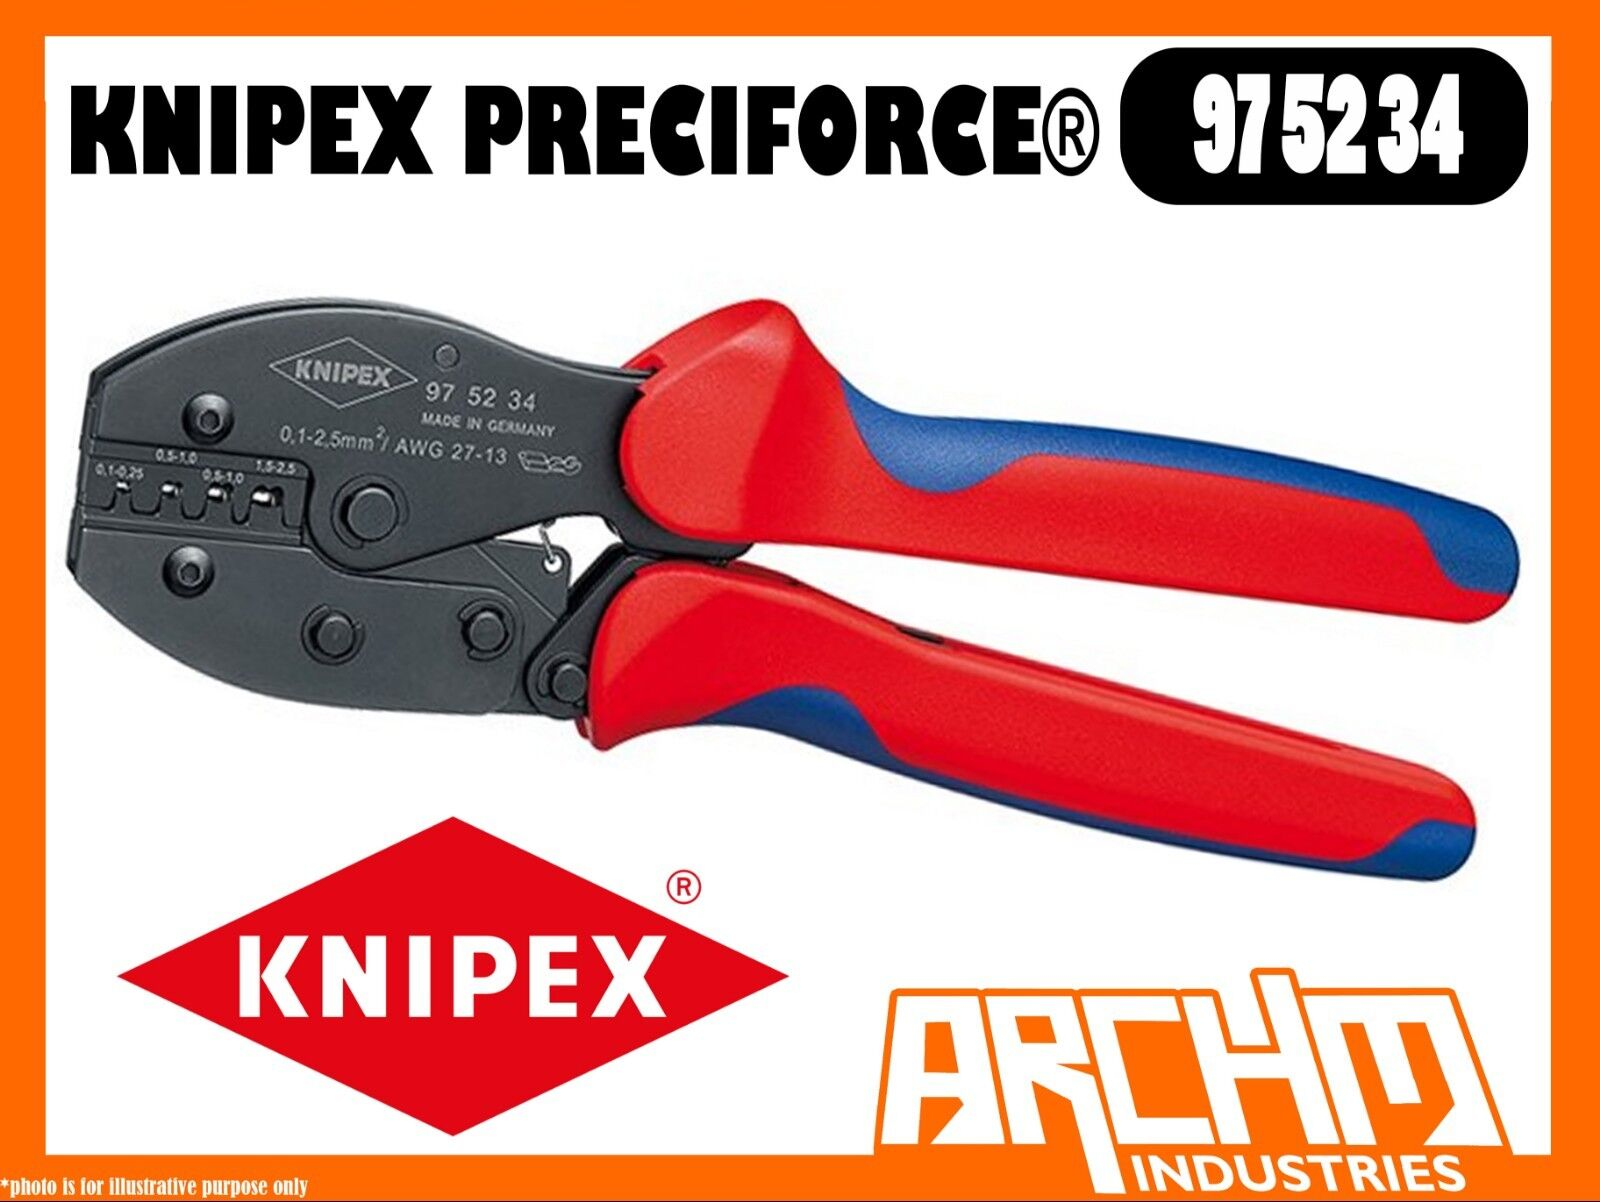 KNIPEX 975234 - PRECIFORCE CRIMPING PLIERS 220MM - PRECISION DIES F-CRIMP